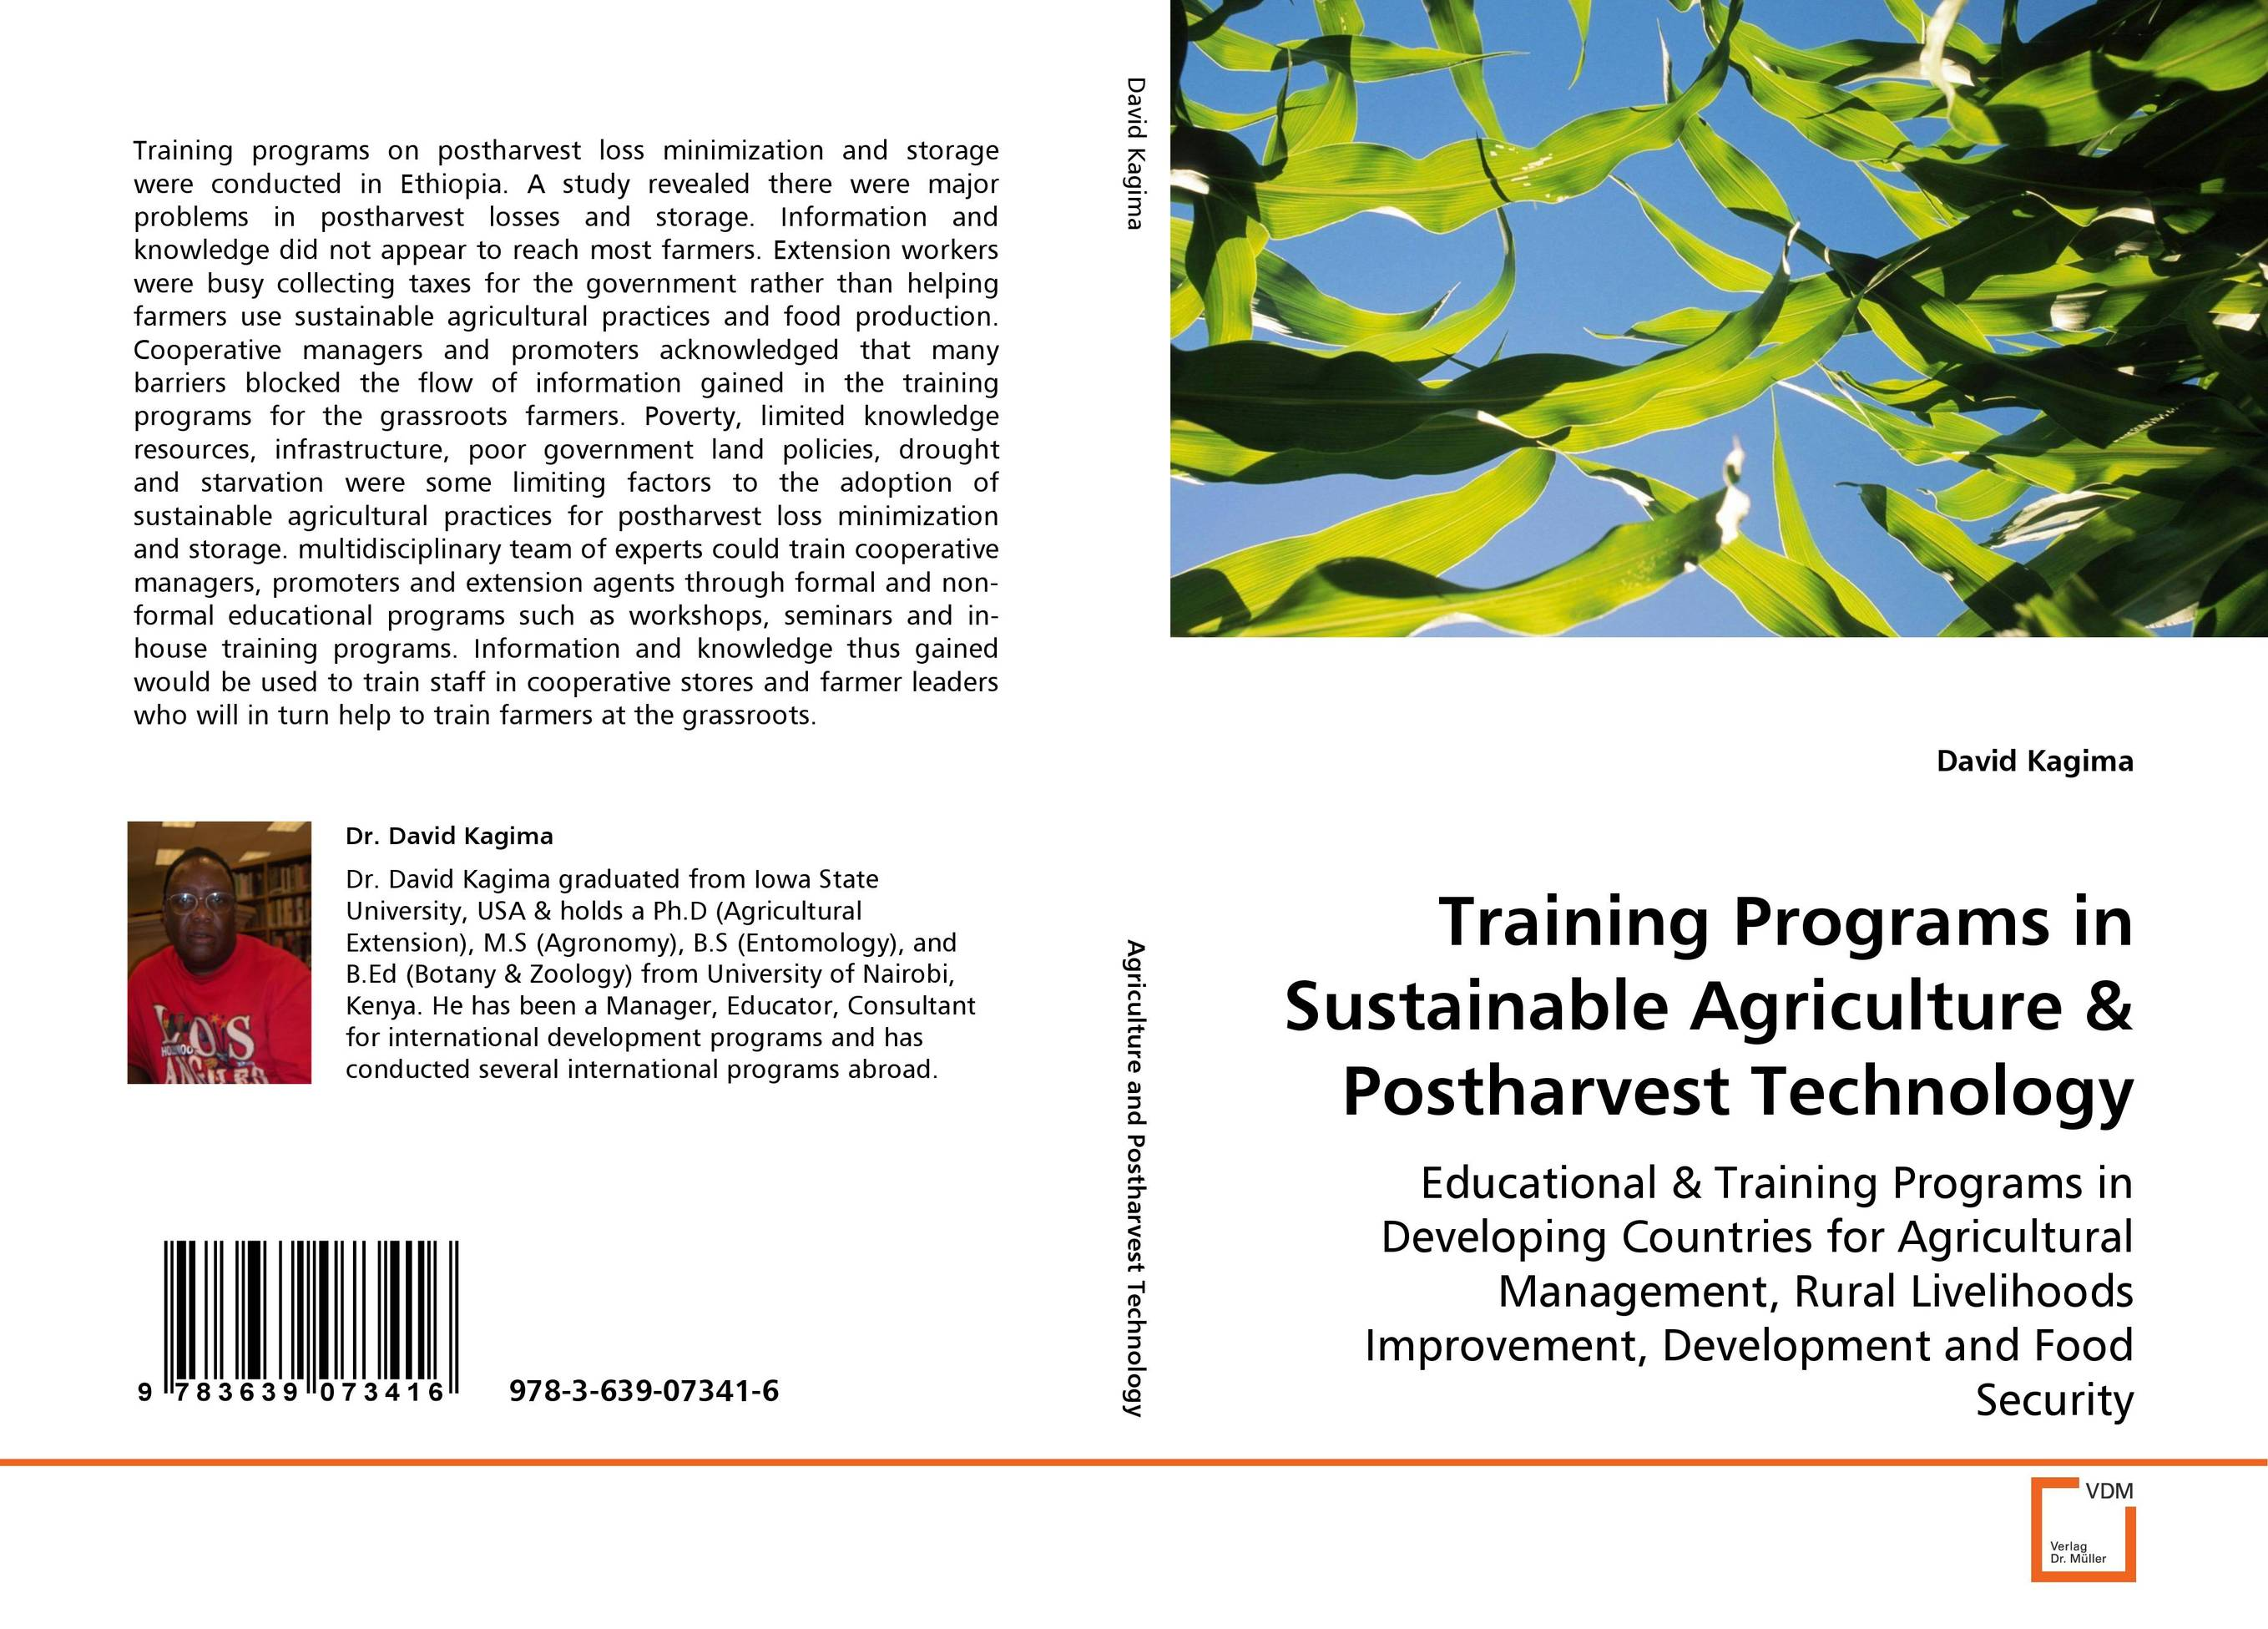 Training programs in sustainable agriculture